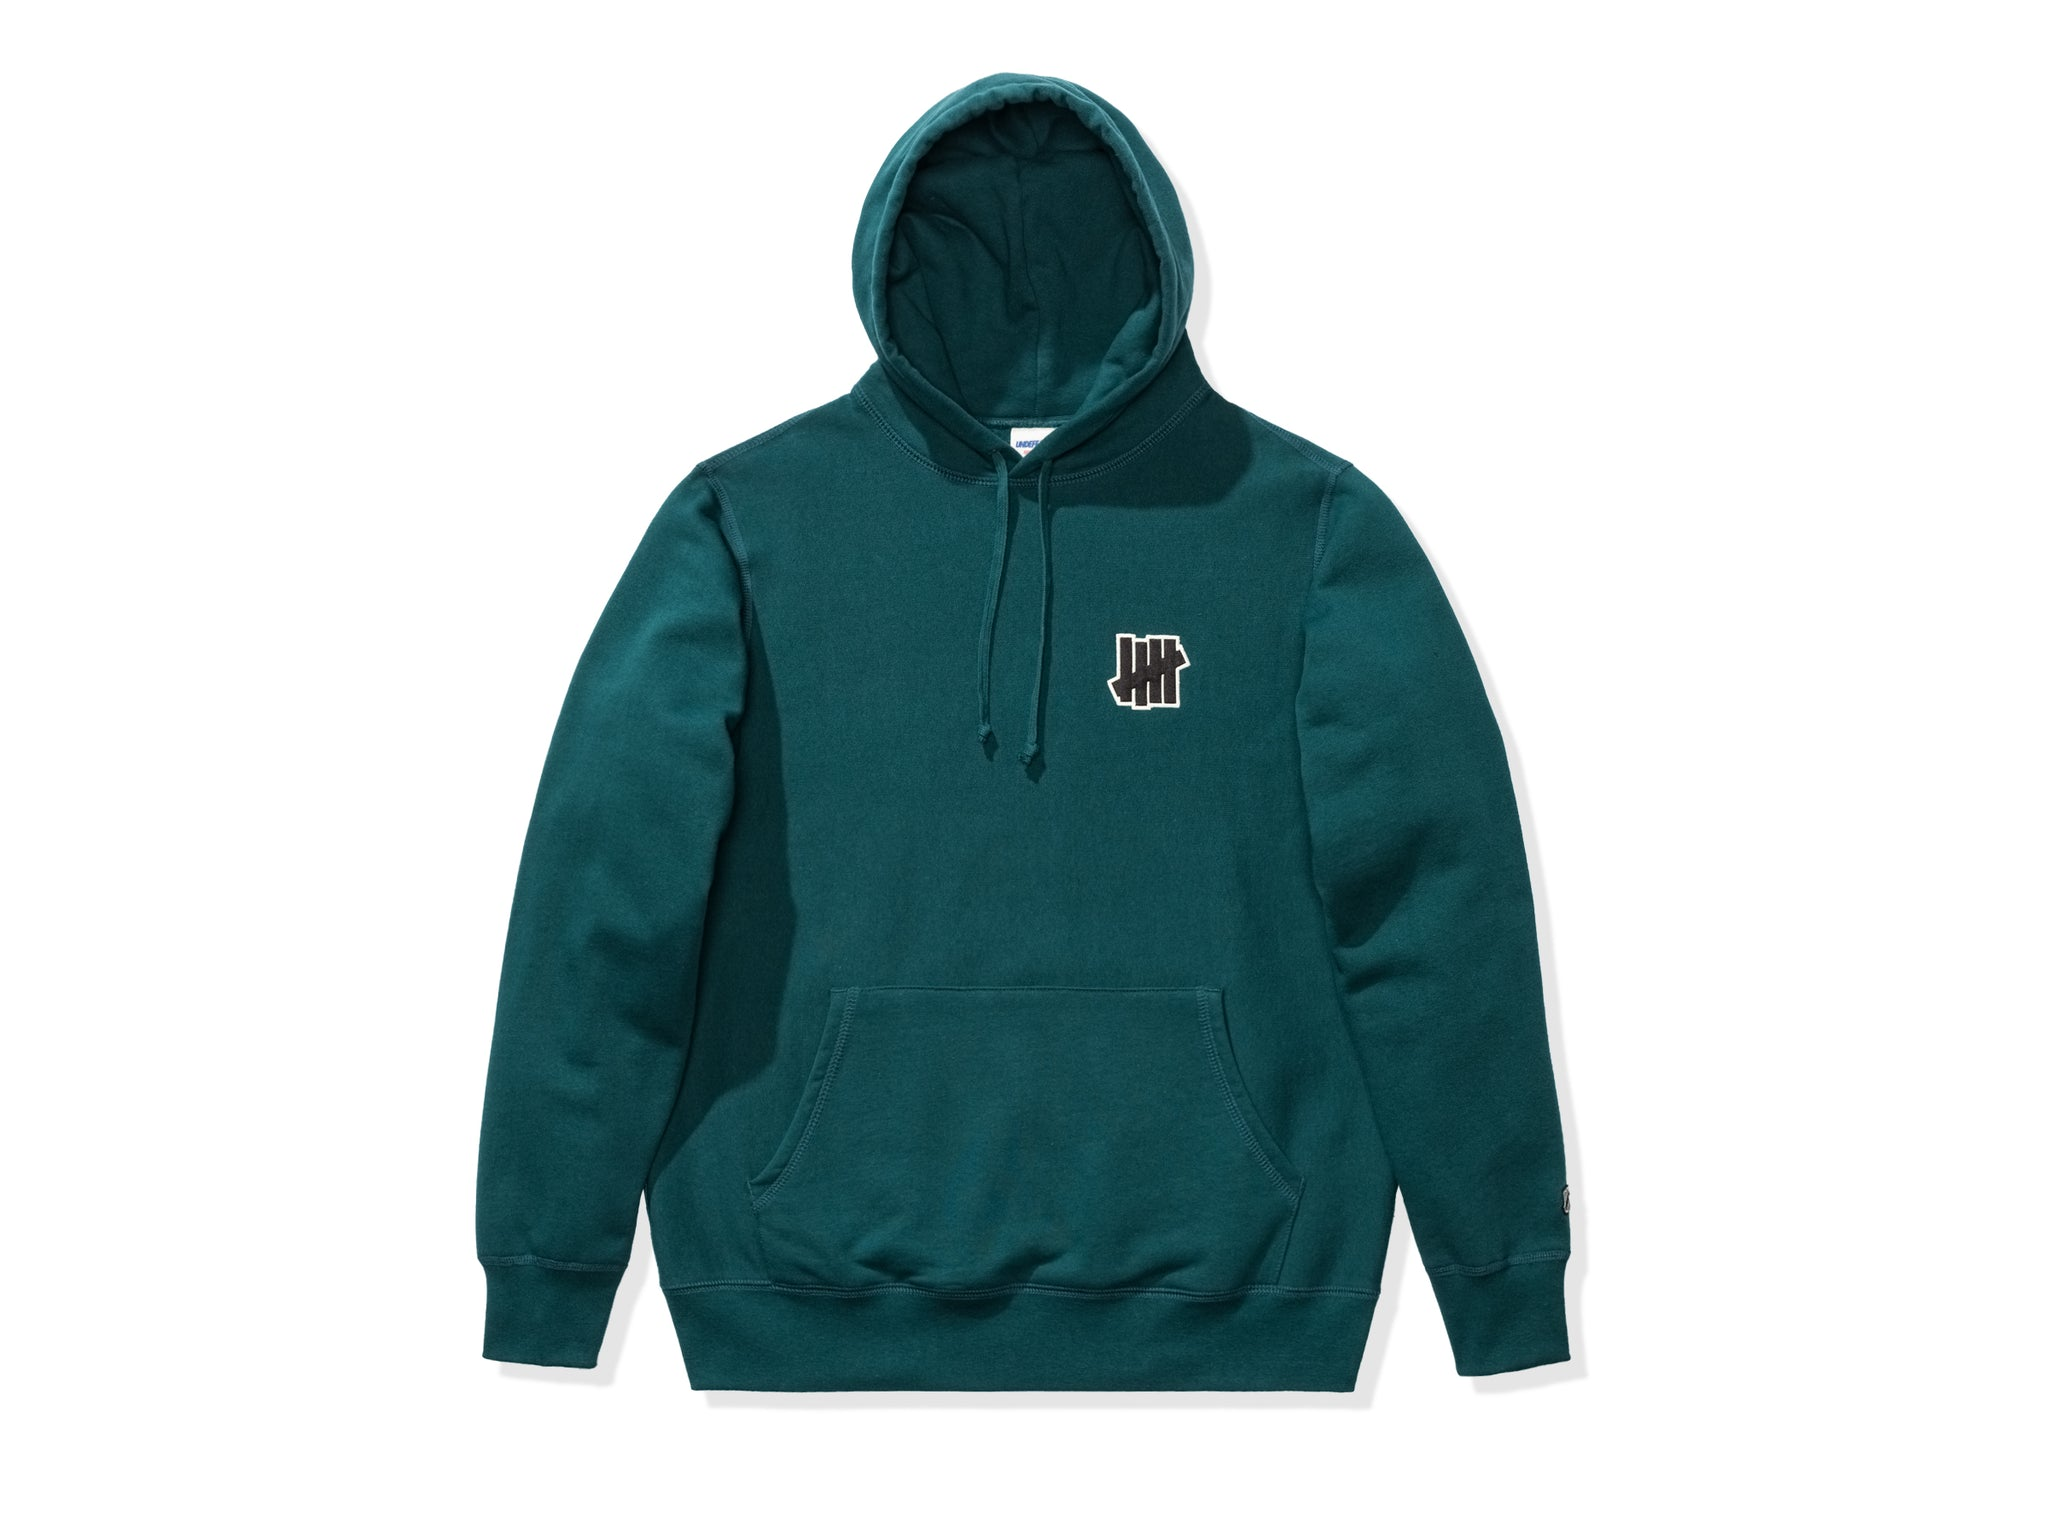 UNDEFEATED SATIN ICON PULLOVER HOODIE